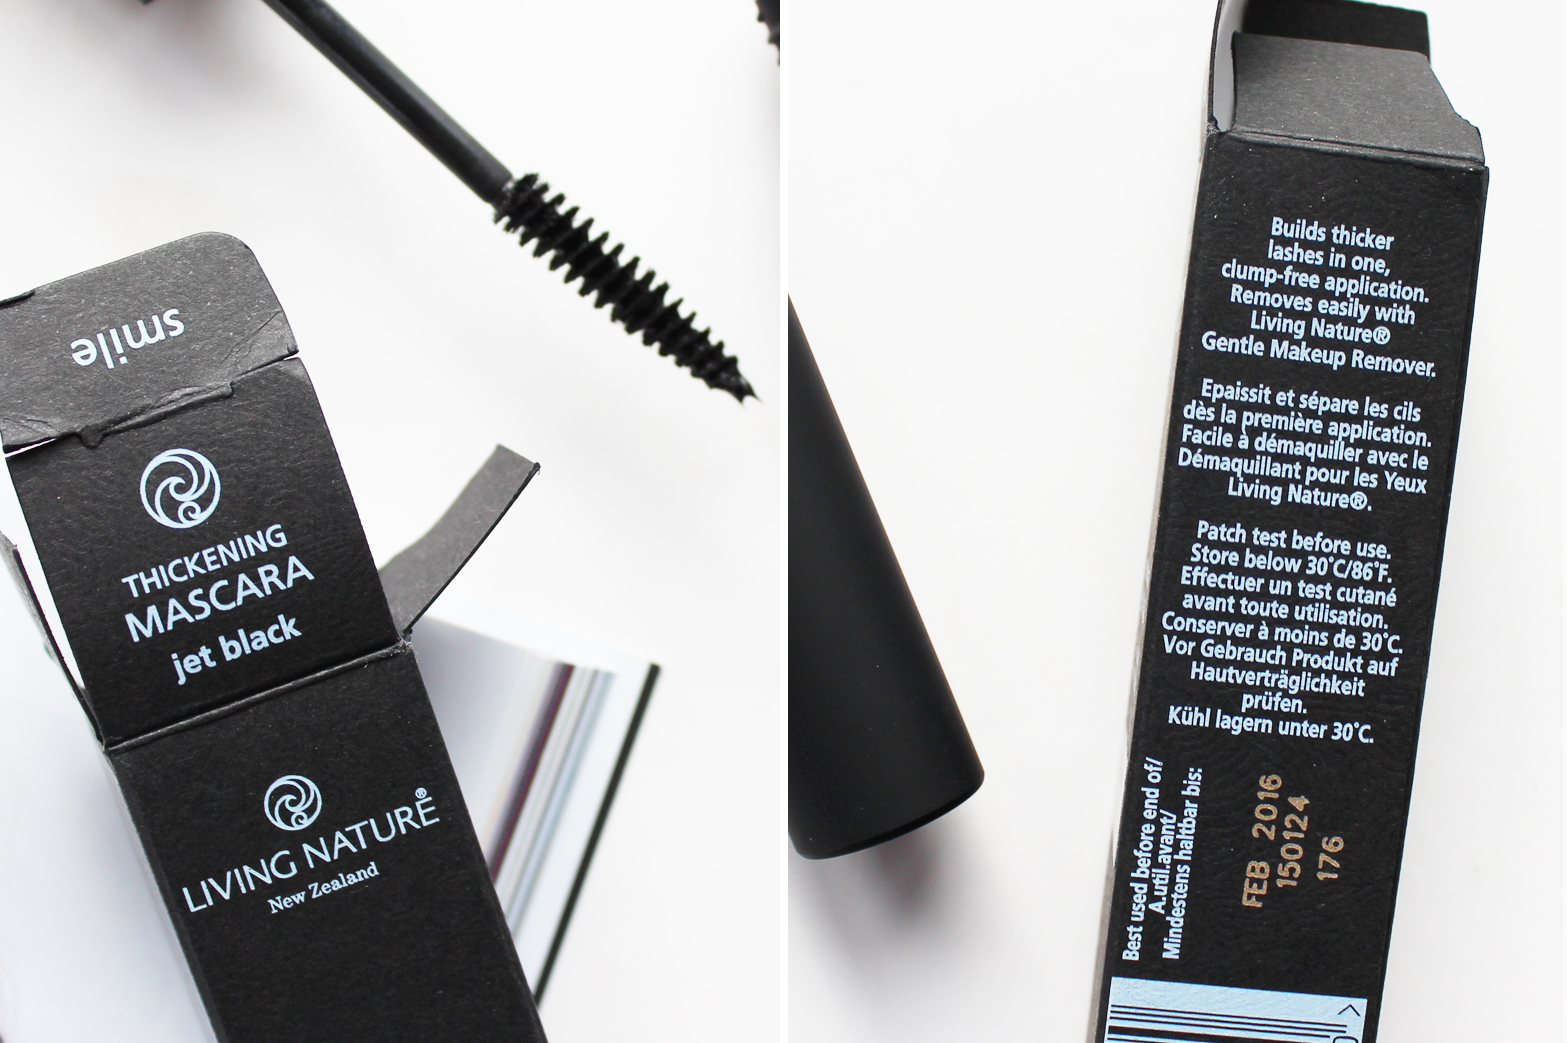 LIVING NATURE | Thickening Mascara in Jet Black - Review - CassandraMyee